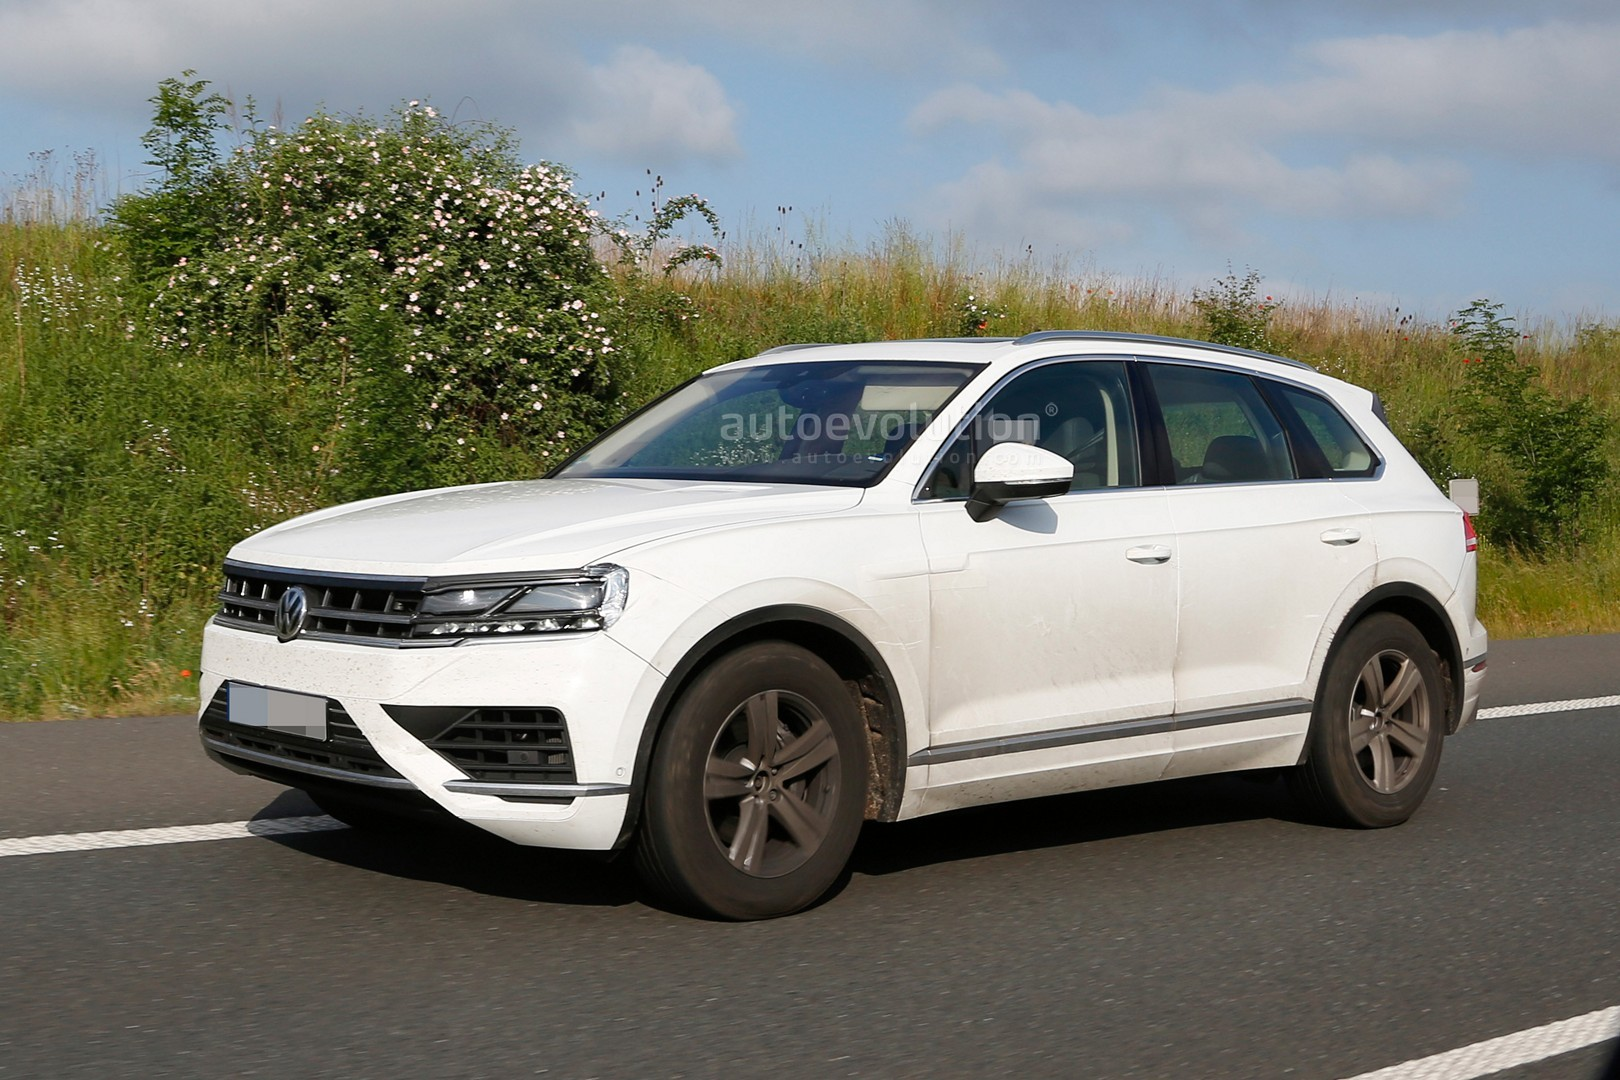 2018 volkswagen touareg reportedly set for debut in april autoevolution. Black Bedroom Furniture Sets. Home Design Ideas